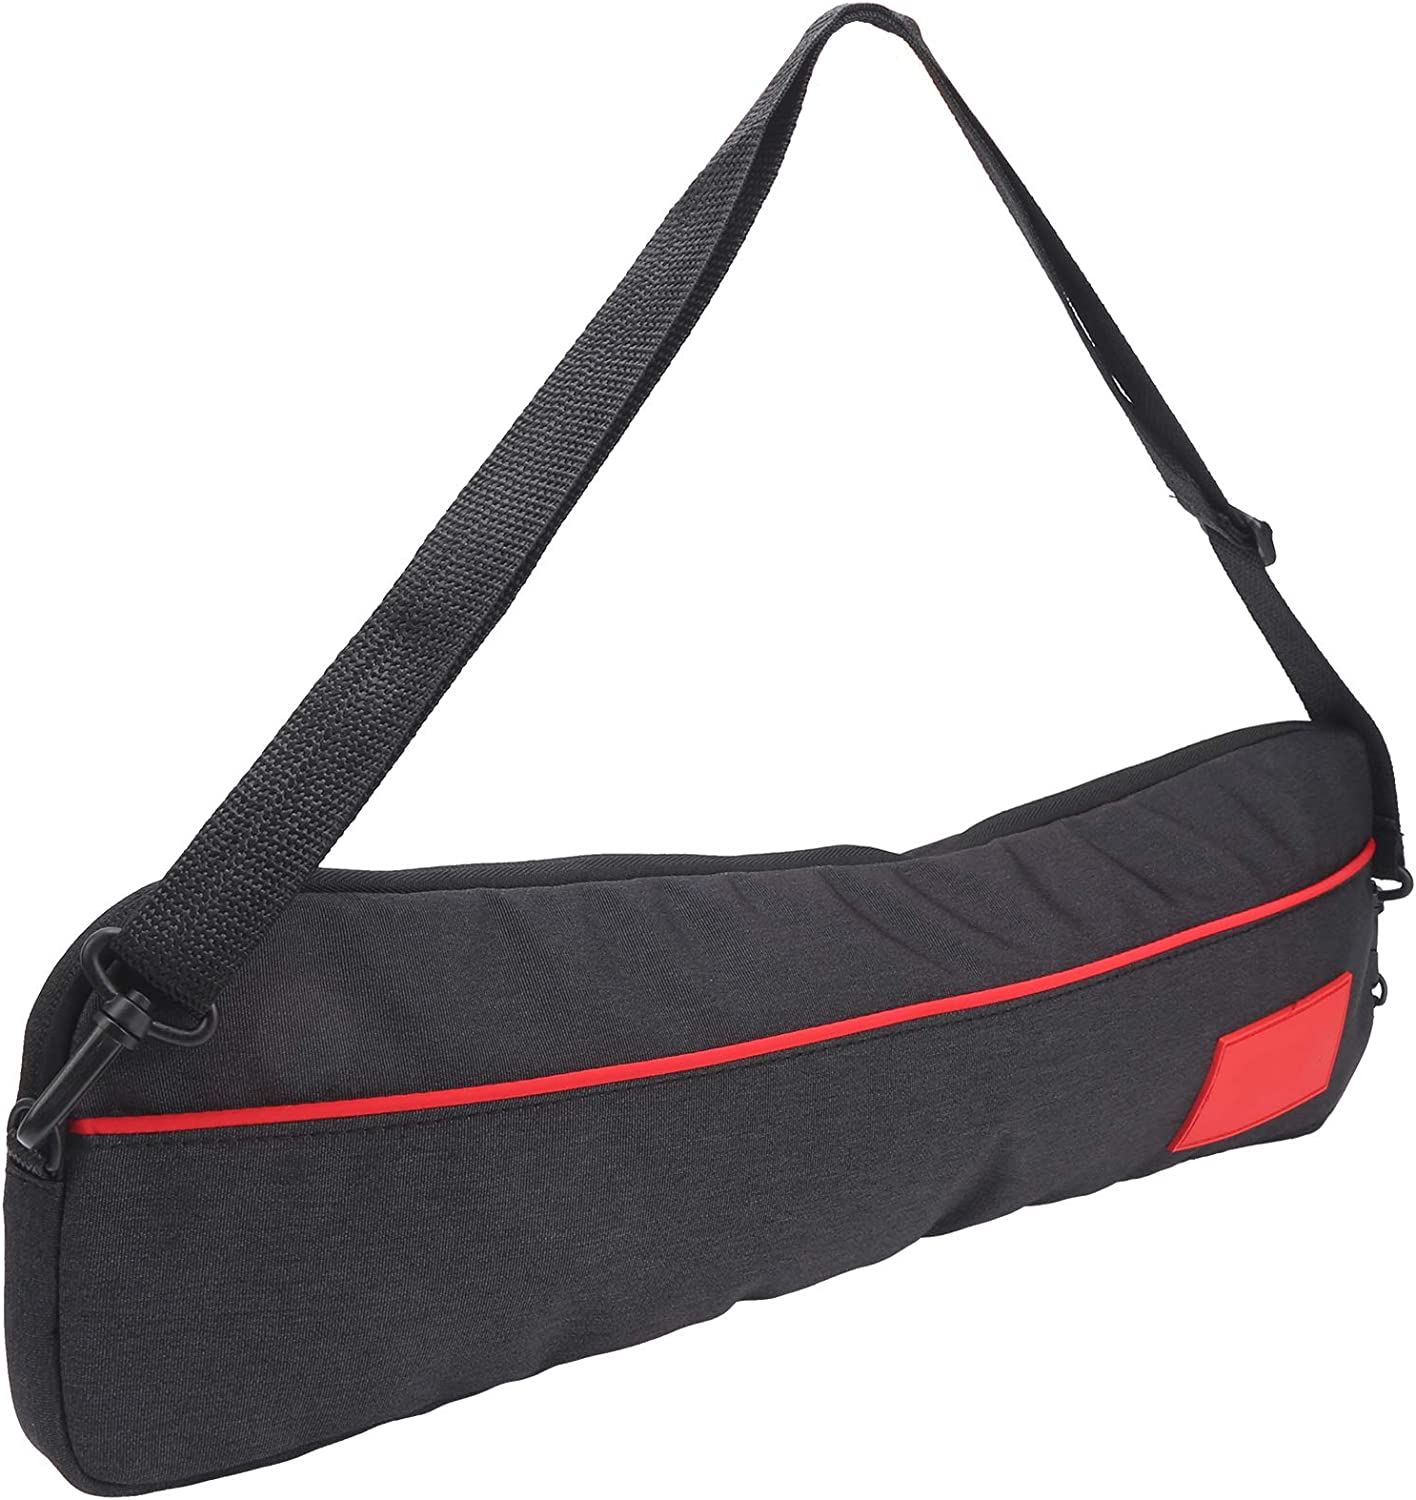 Tripod Stand Storage Bag Stabilizer Case Carrying Ha trend Great interest rank Protective